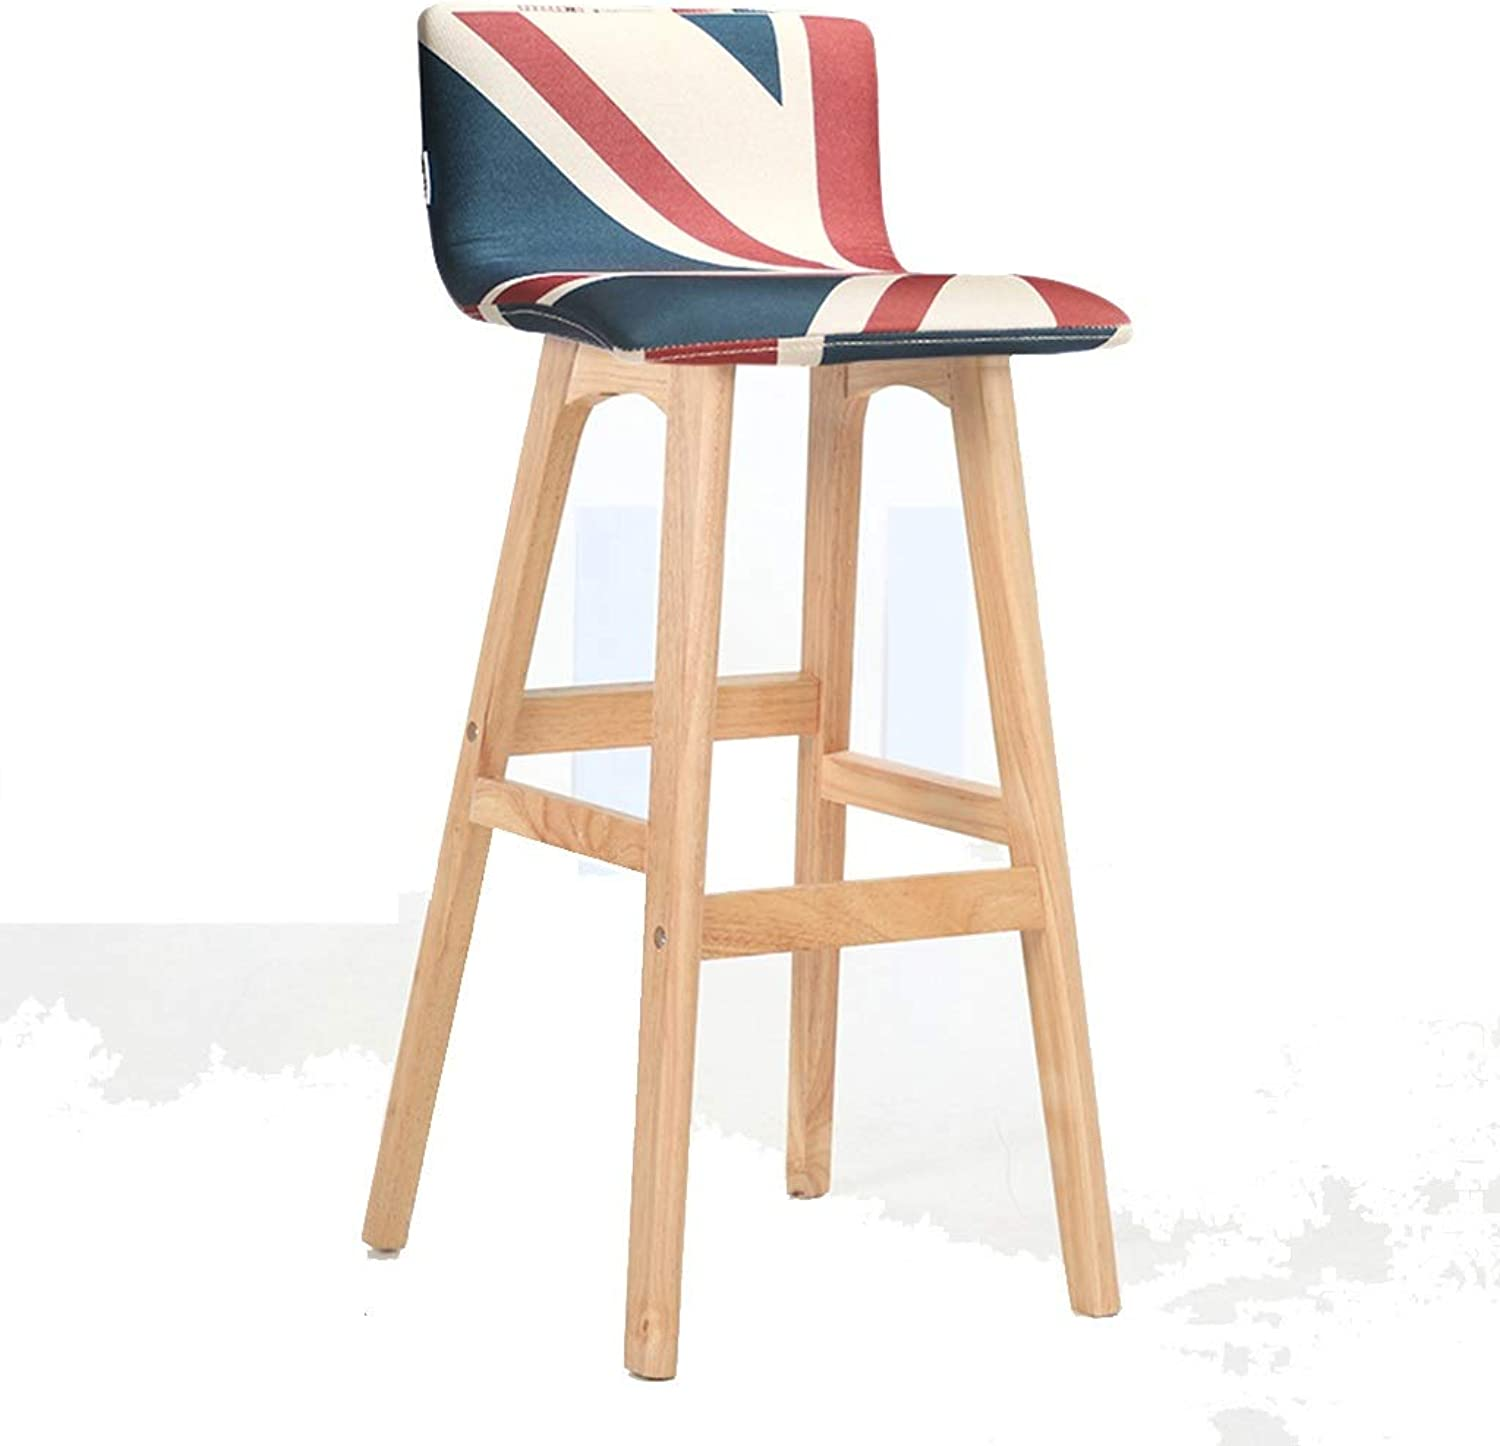 Barstools - Barstools with Backrest Kitchen Dining Chair Solid Wooden Stool Breakfast Bar Stool Fabric Linen 0520A (color   Log Frame -, Size   Pattern-1)